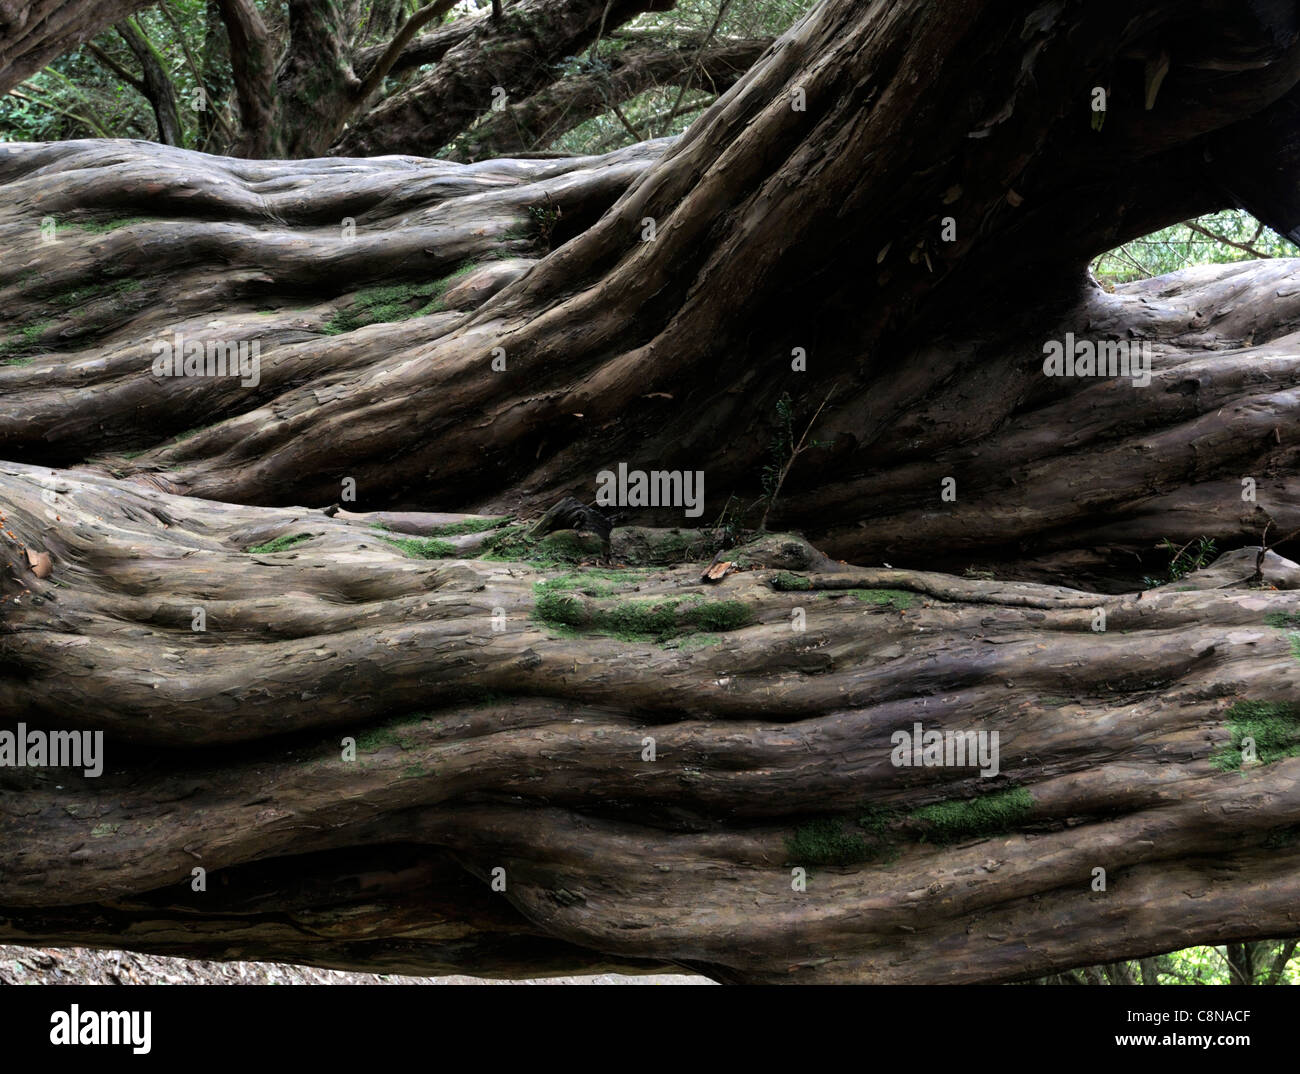 ancient taxus baccata yew tree old twisted warped bent trunk smooth bark evergreen branches trunk shady shade - Stock Image